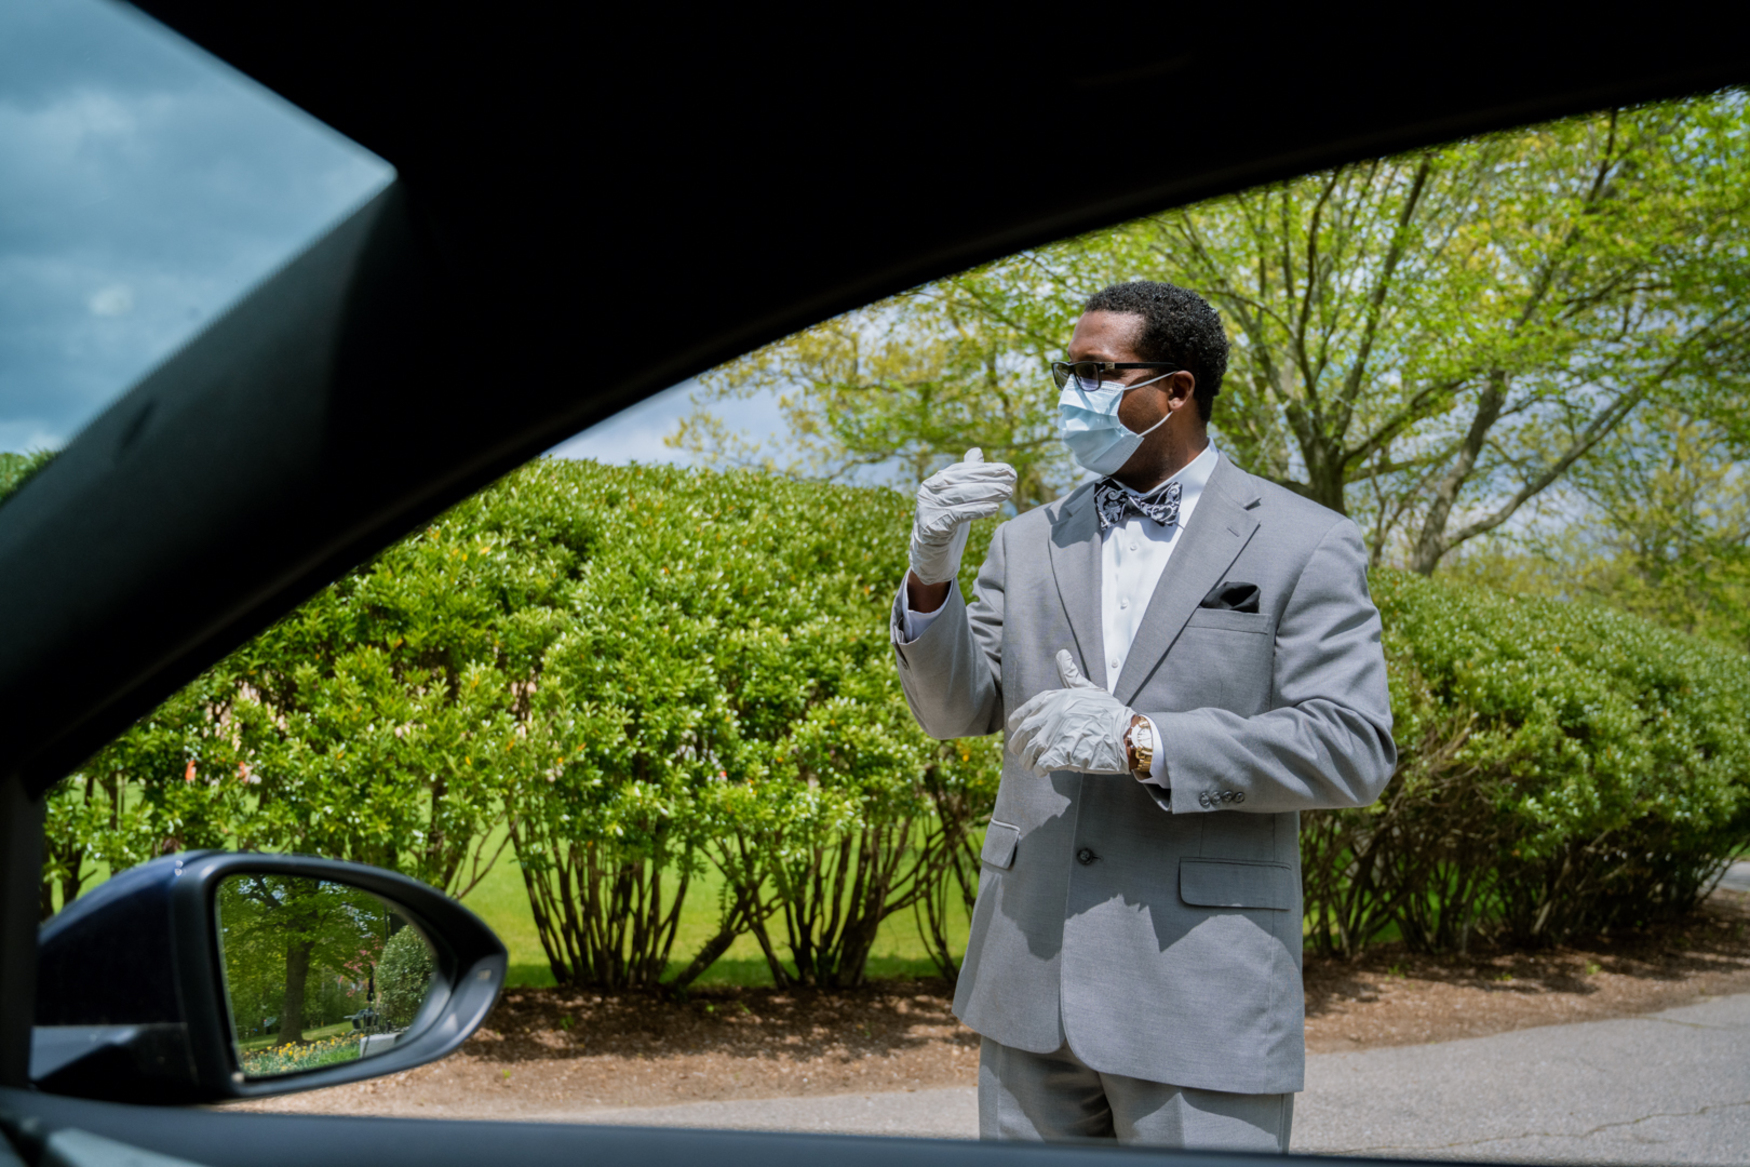 man in suit mask and gloves through car window